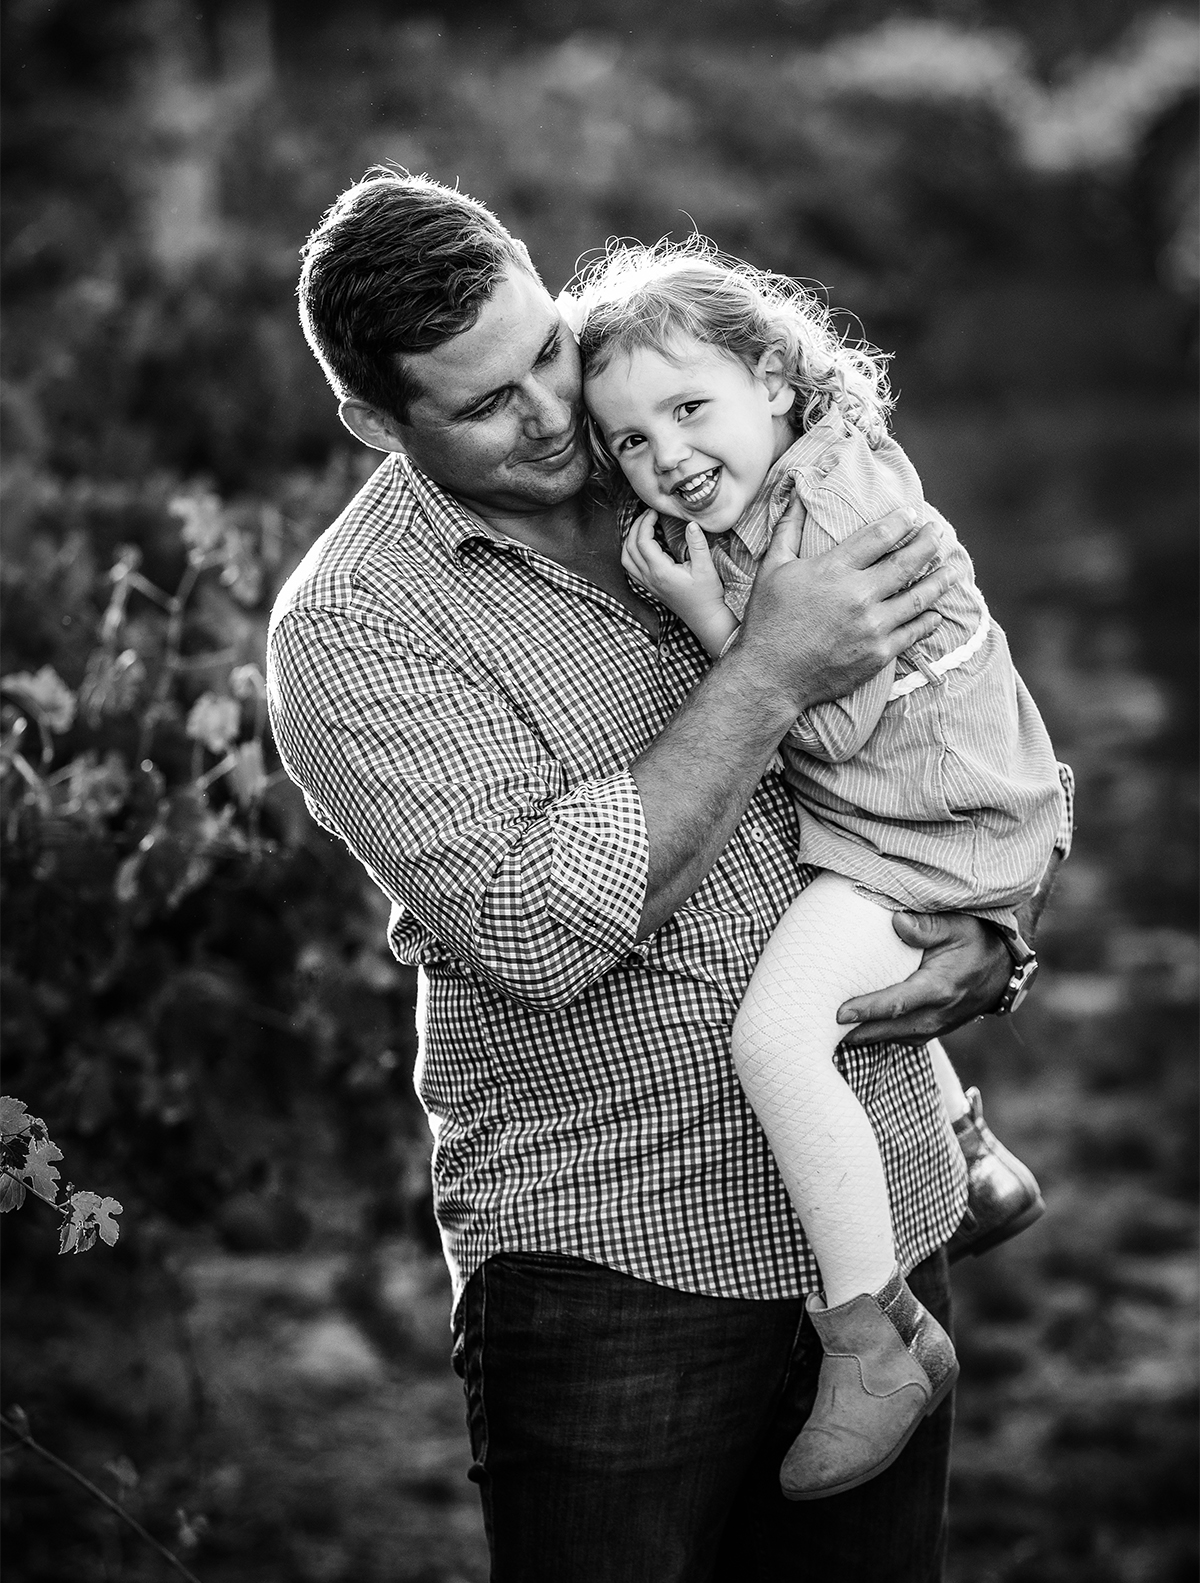 daddy cuddling daughter in the vineyards at their family photo session by deb elton photgraphy